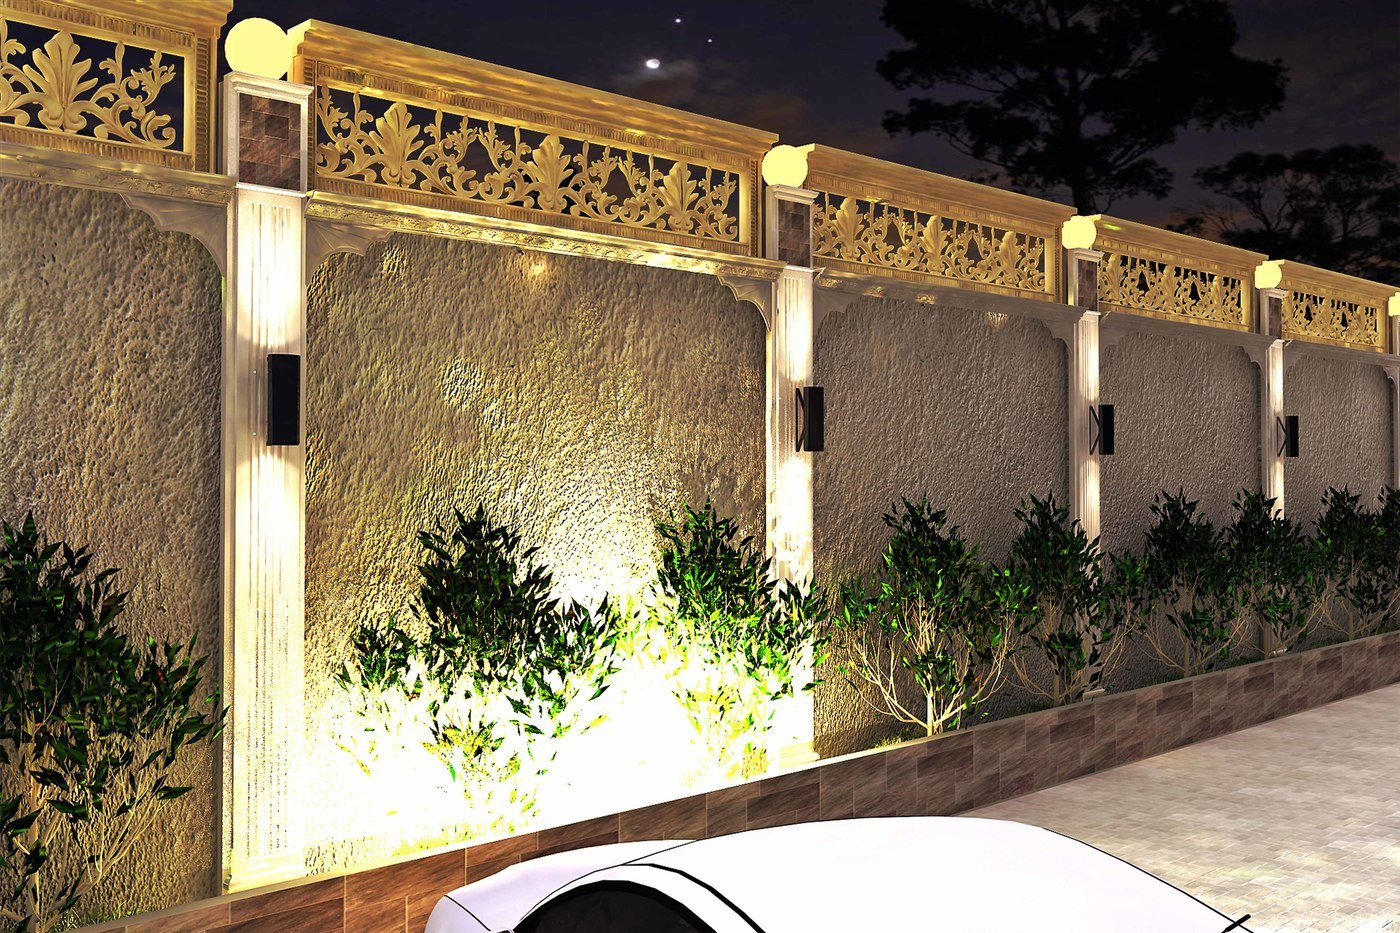 Boundary Wall Design By Israr Ahmed At